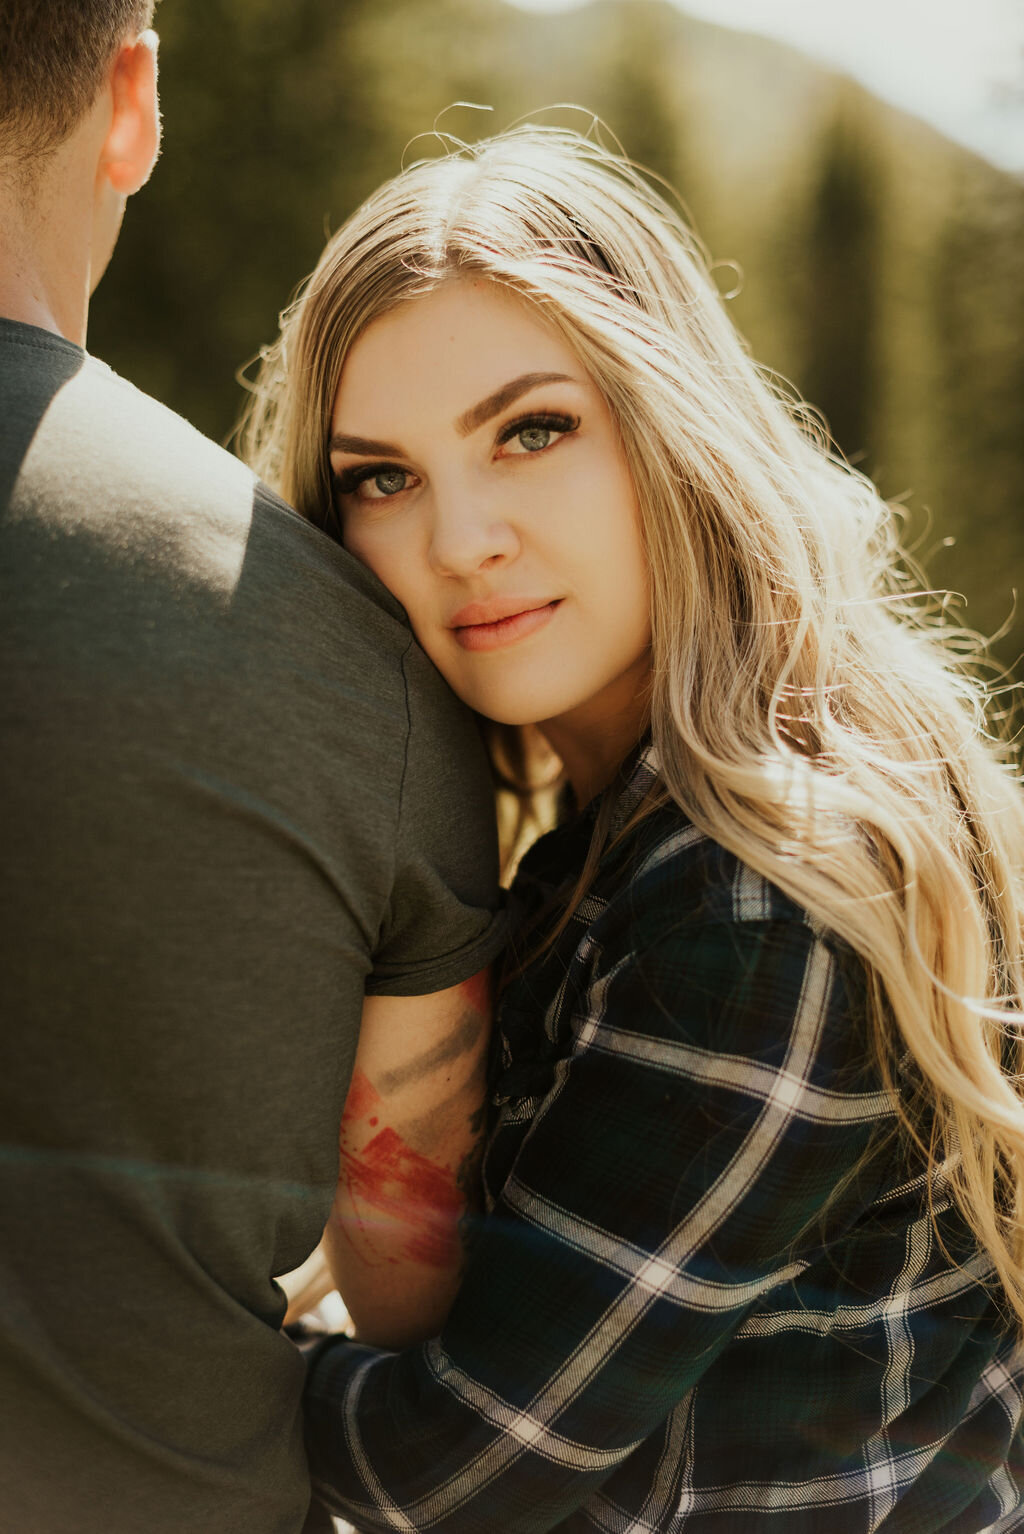 mountain-engagement-session-provo-utah-kyle-and-taylor-208.jpg